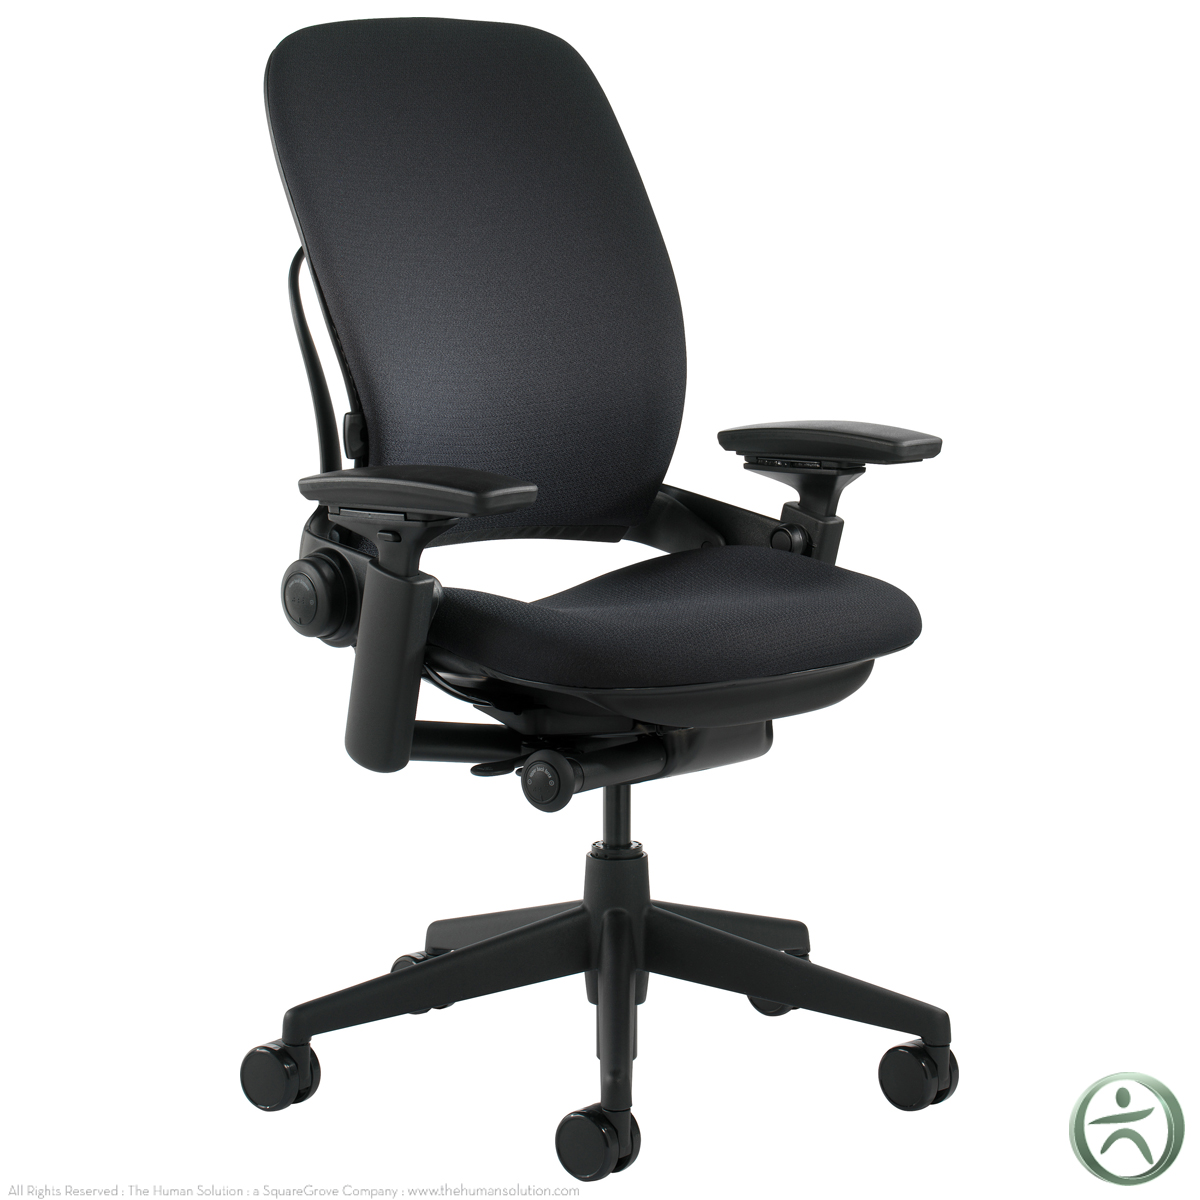 Steelcase Chair Steelcase Leap Chair Open Box Clearance